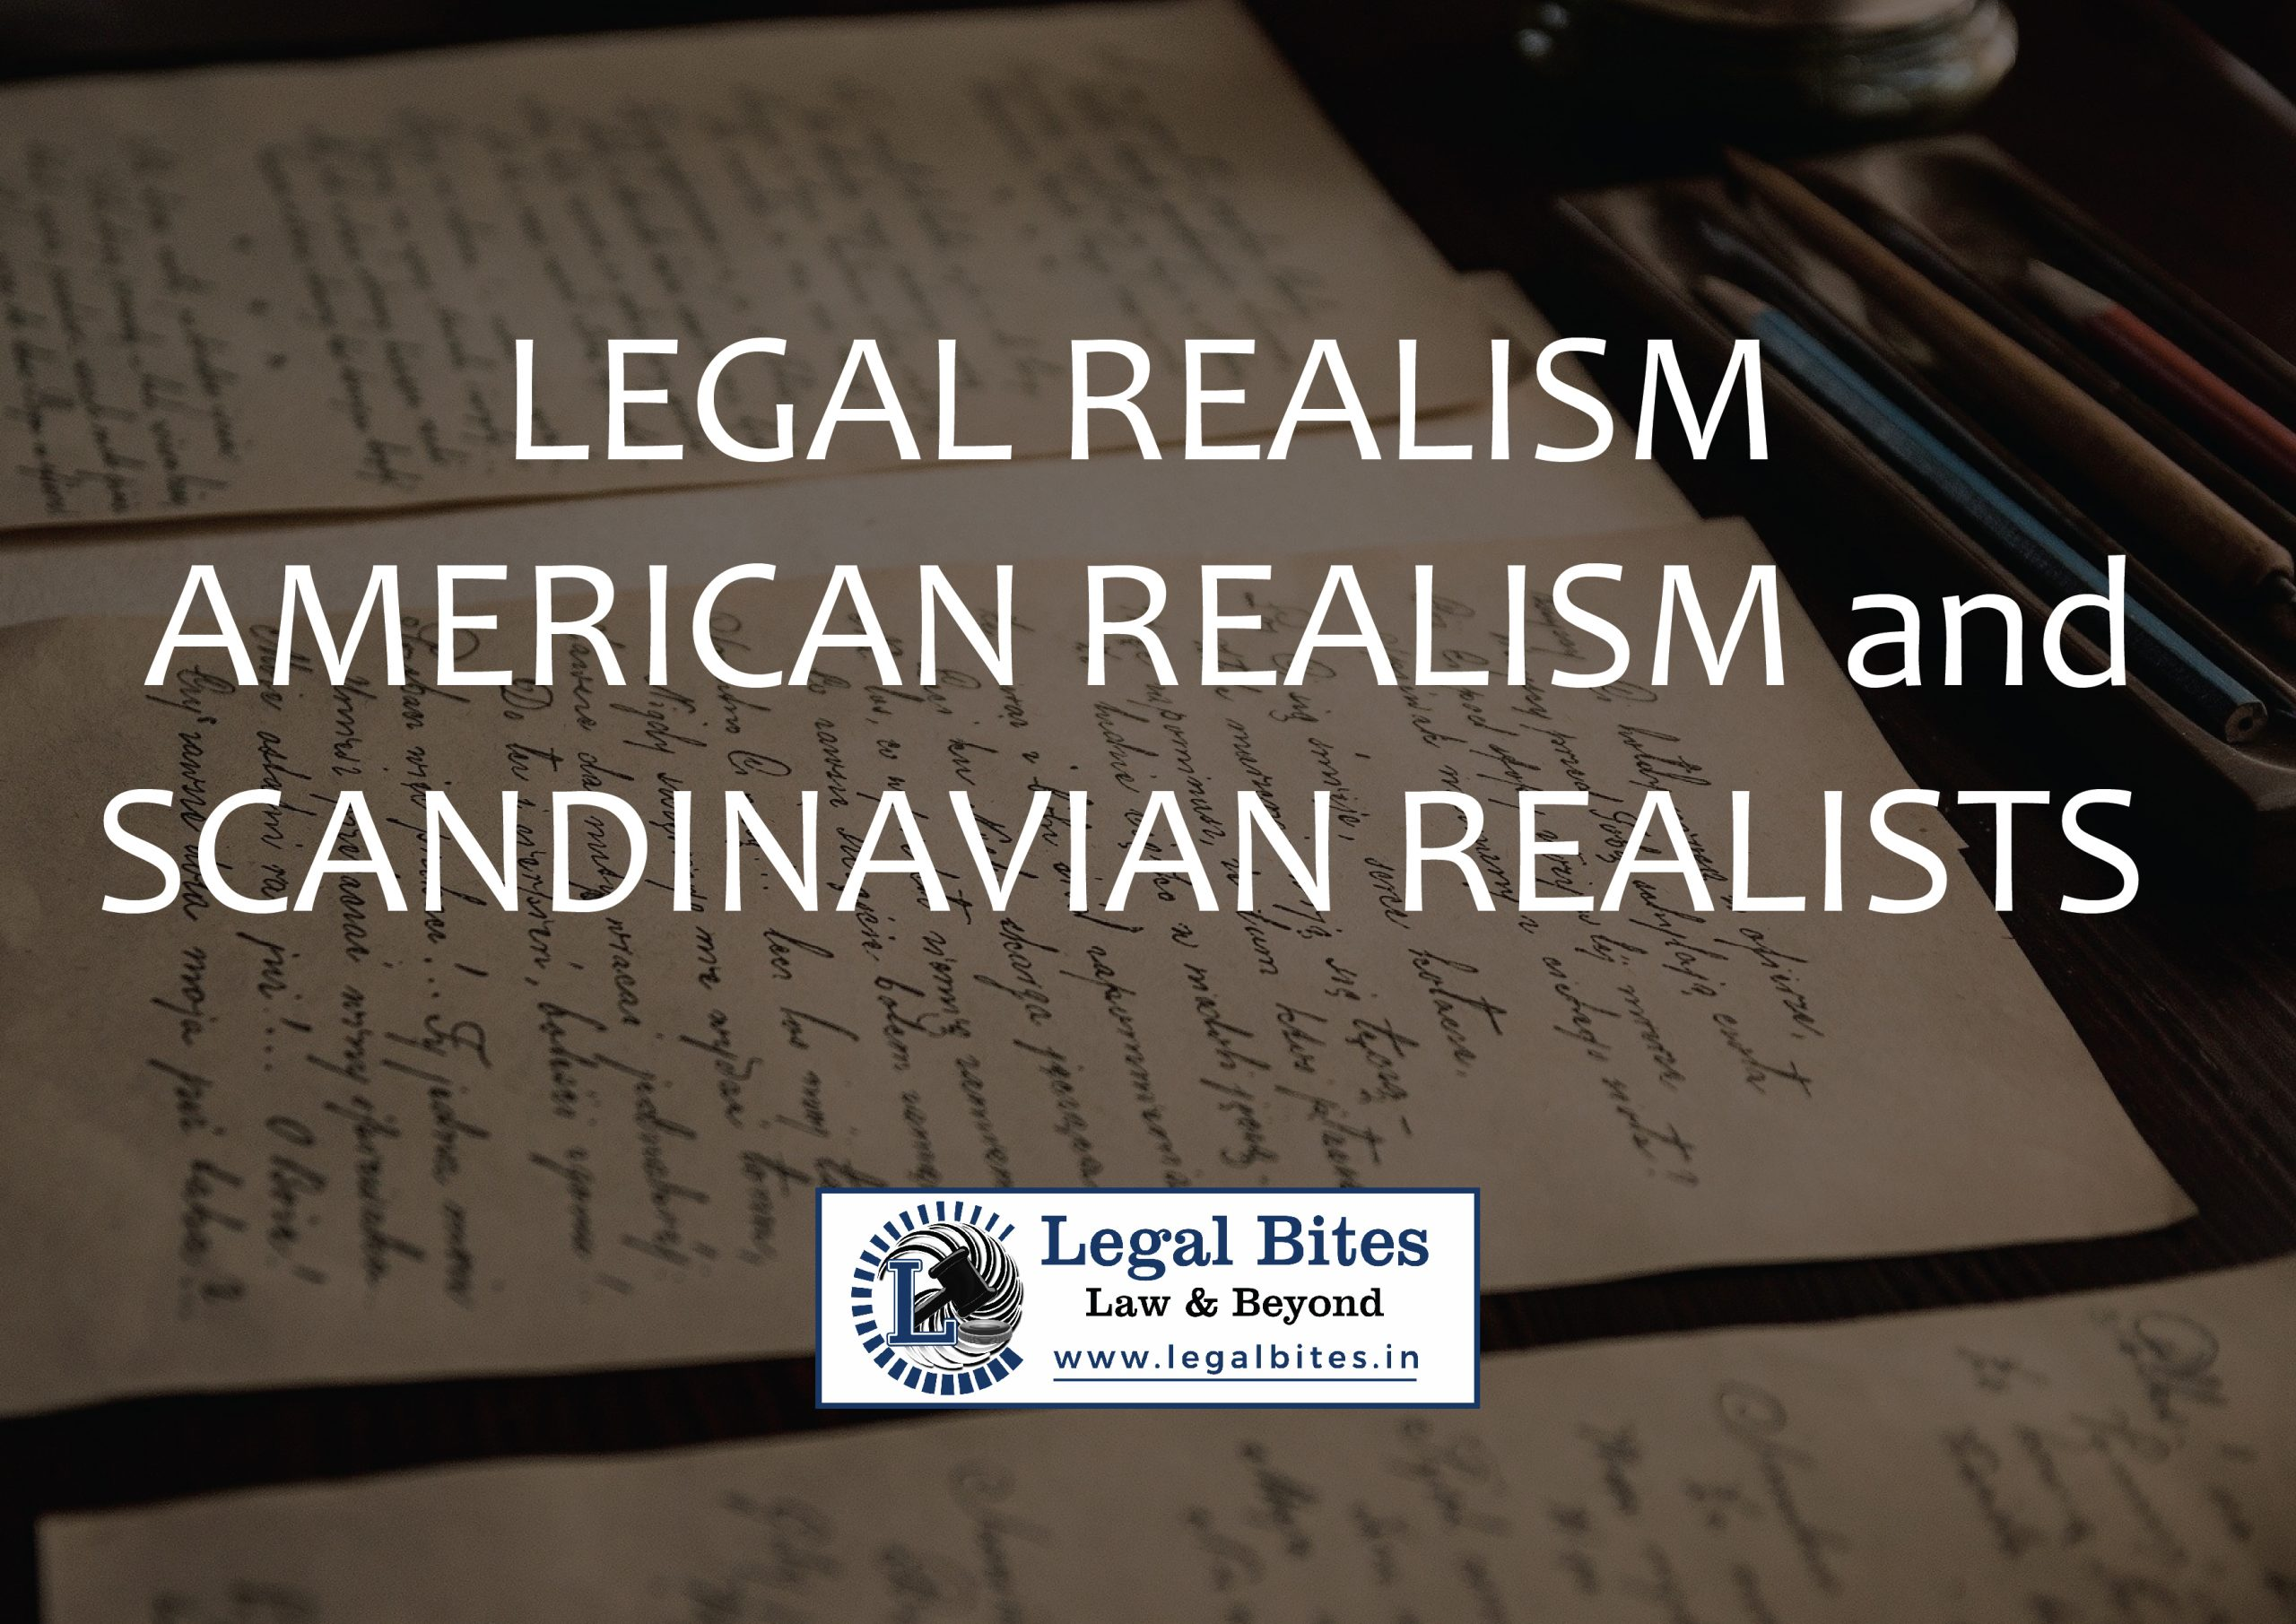 Legal Realism - American Realism and the Scandinavian Realists